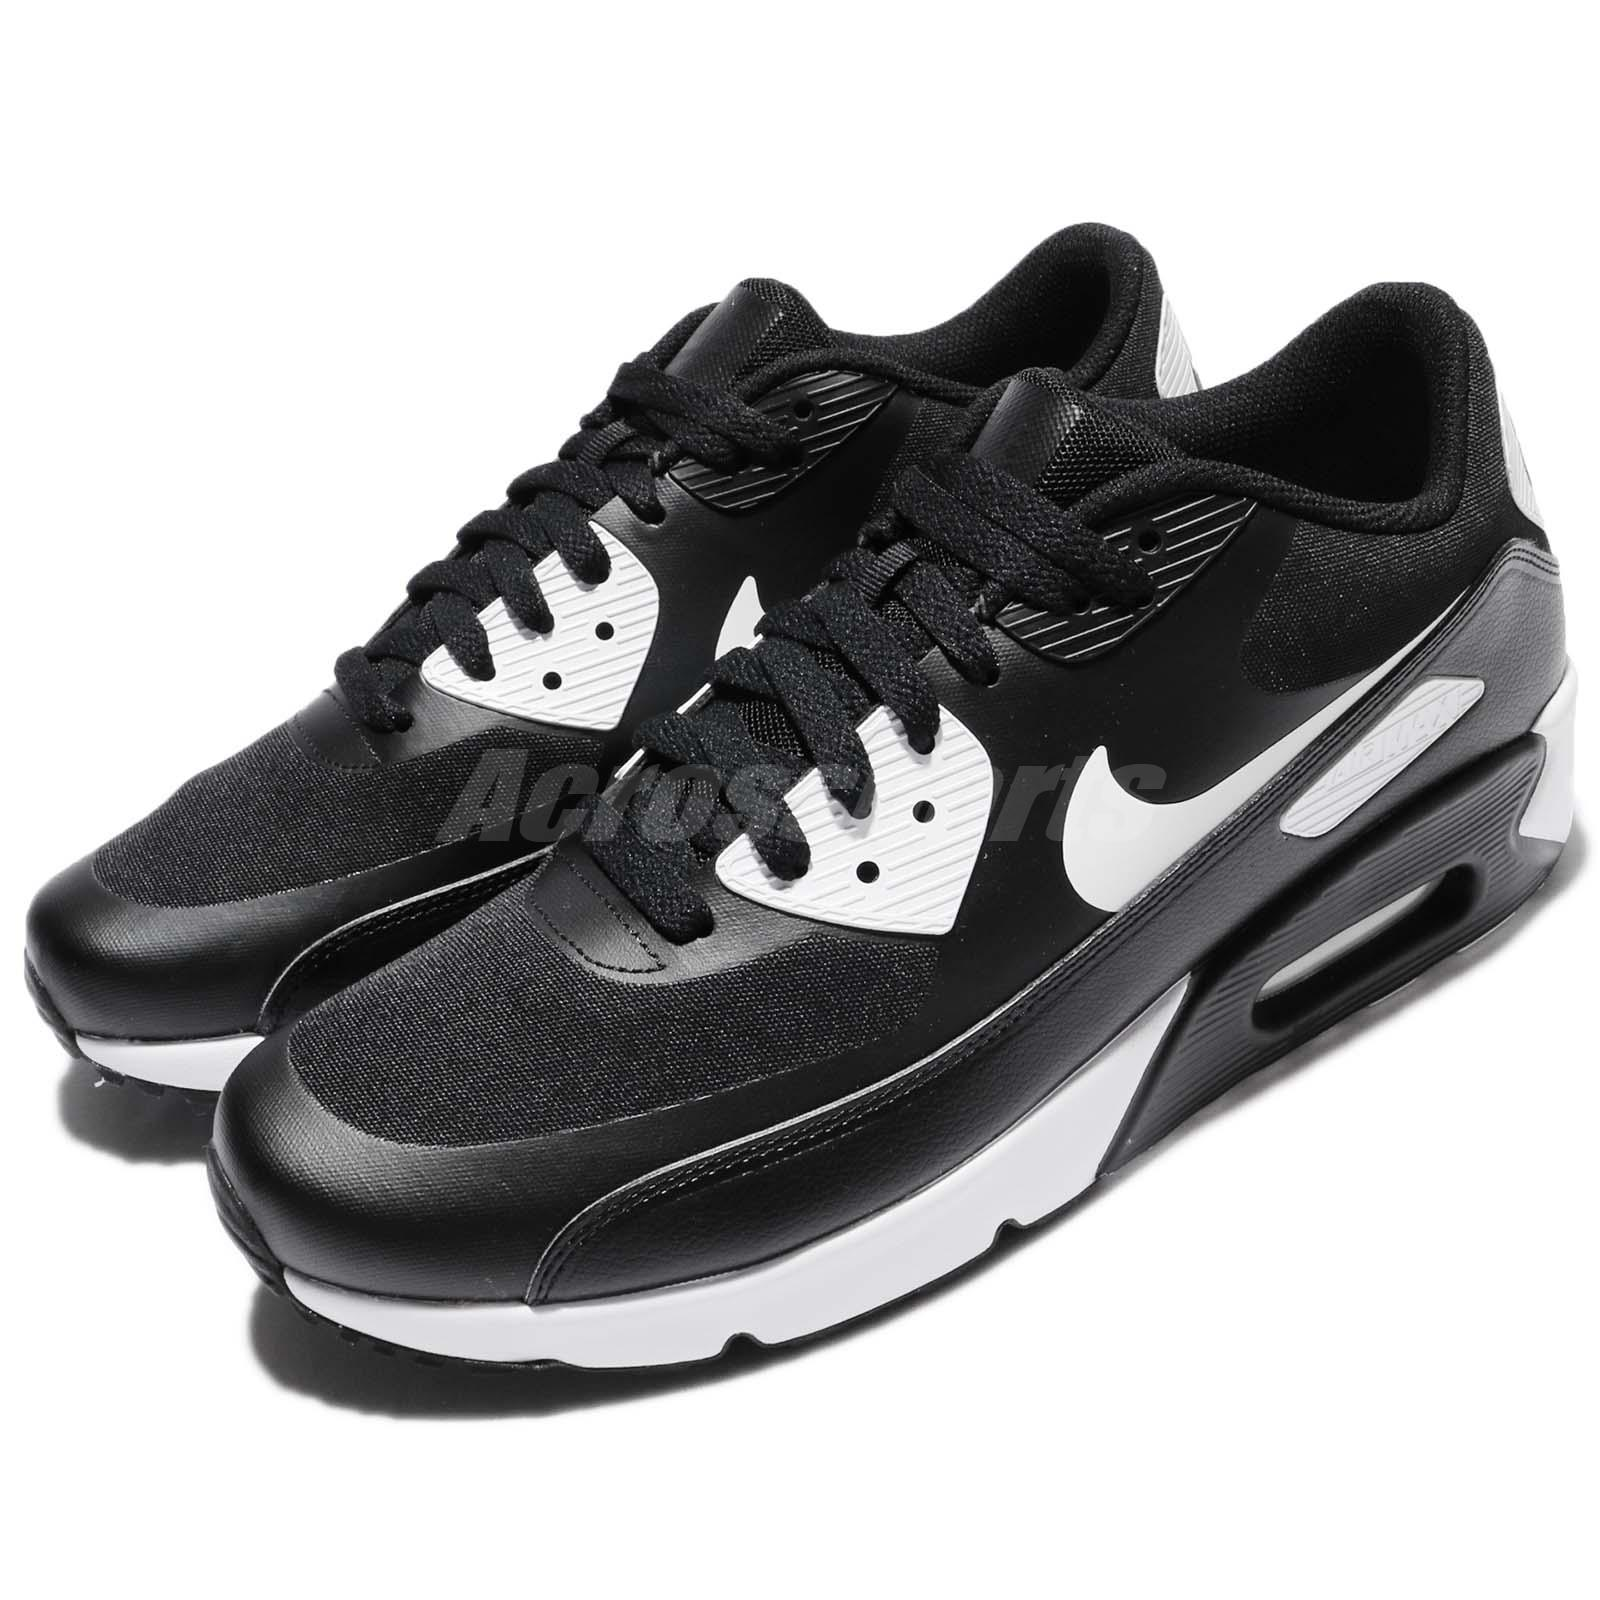 Details about Nike Air Max 90 Ultra 2.0 Essential Black White Men Running  Shoes 875695-008 bbd0bb82719cc